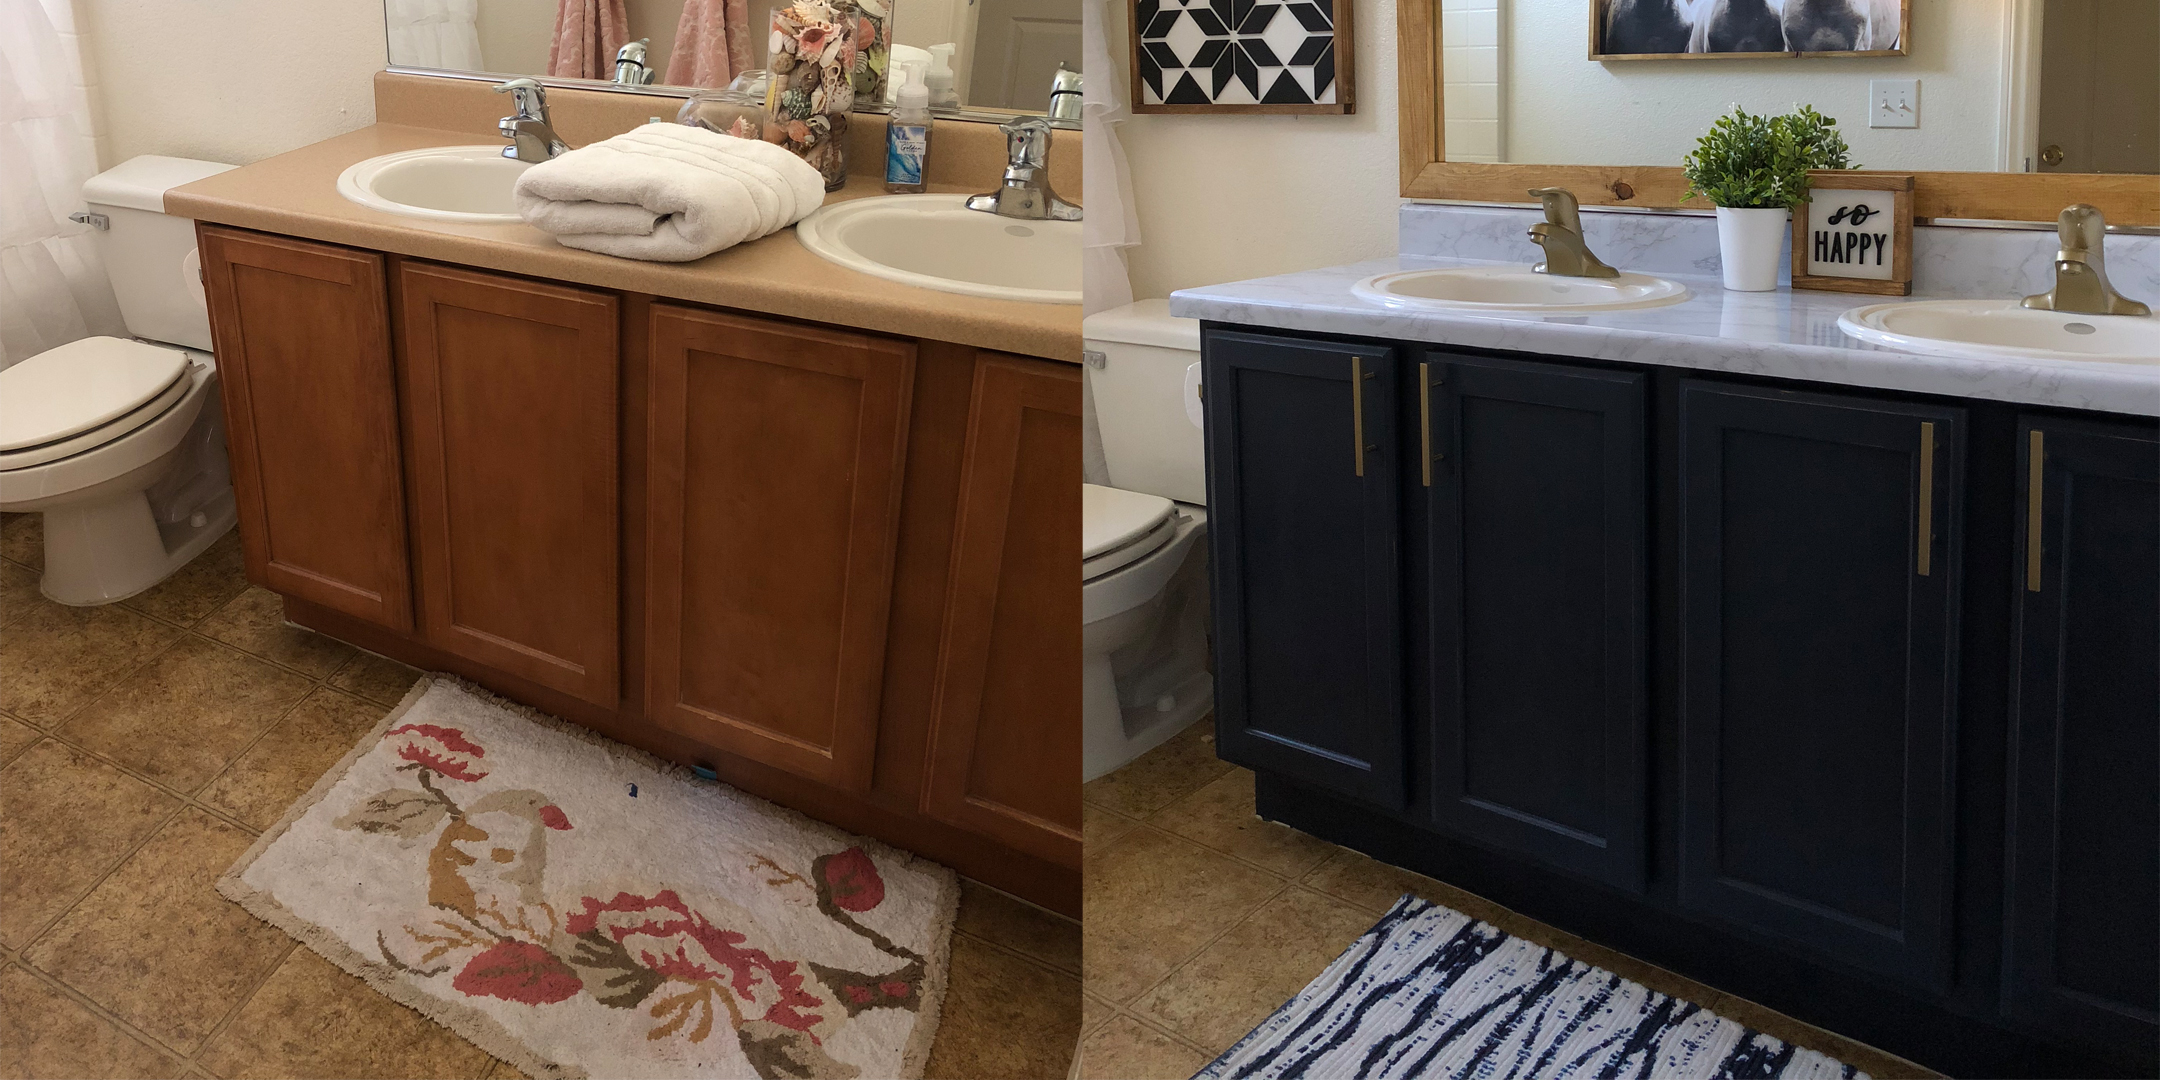 bathroom makeover on a budget, do it yourself home projects, do it yourself affordable home projects, bathroom makeover, BB Frosch, bathroom before and after, do it yourself bathroom makeover, DIY bathroom makeover, do it yourself bathroom makeover inspiration, painting linoleum floors with chalk paint, chalk paint project ideas